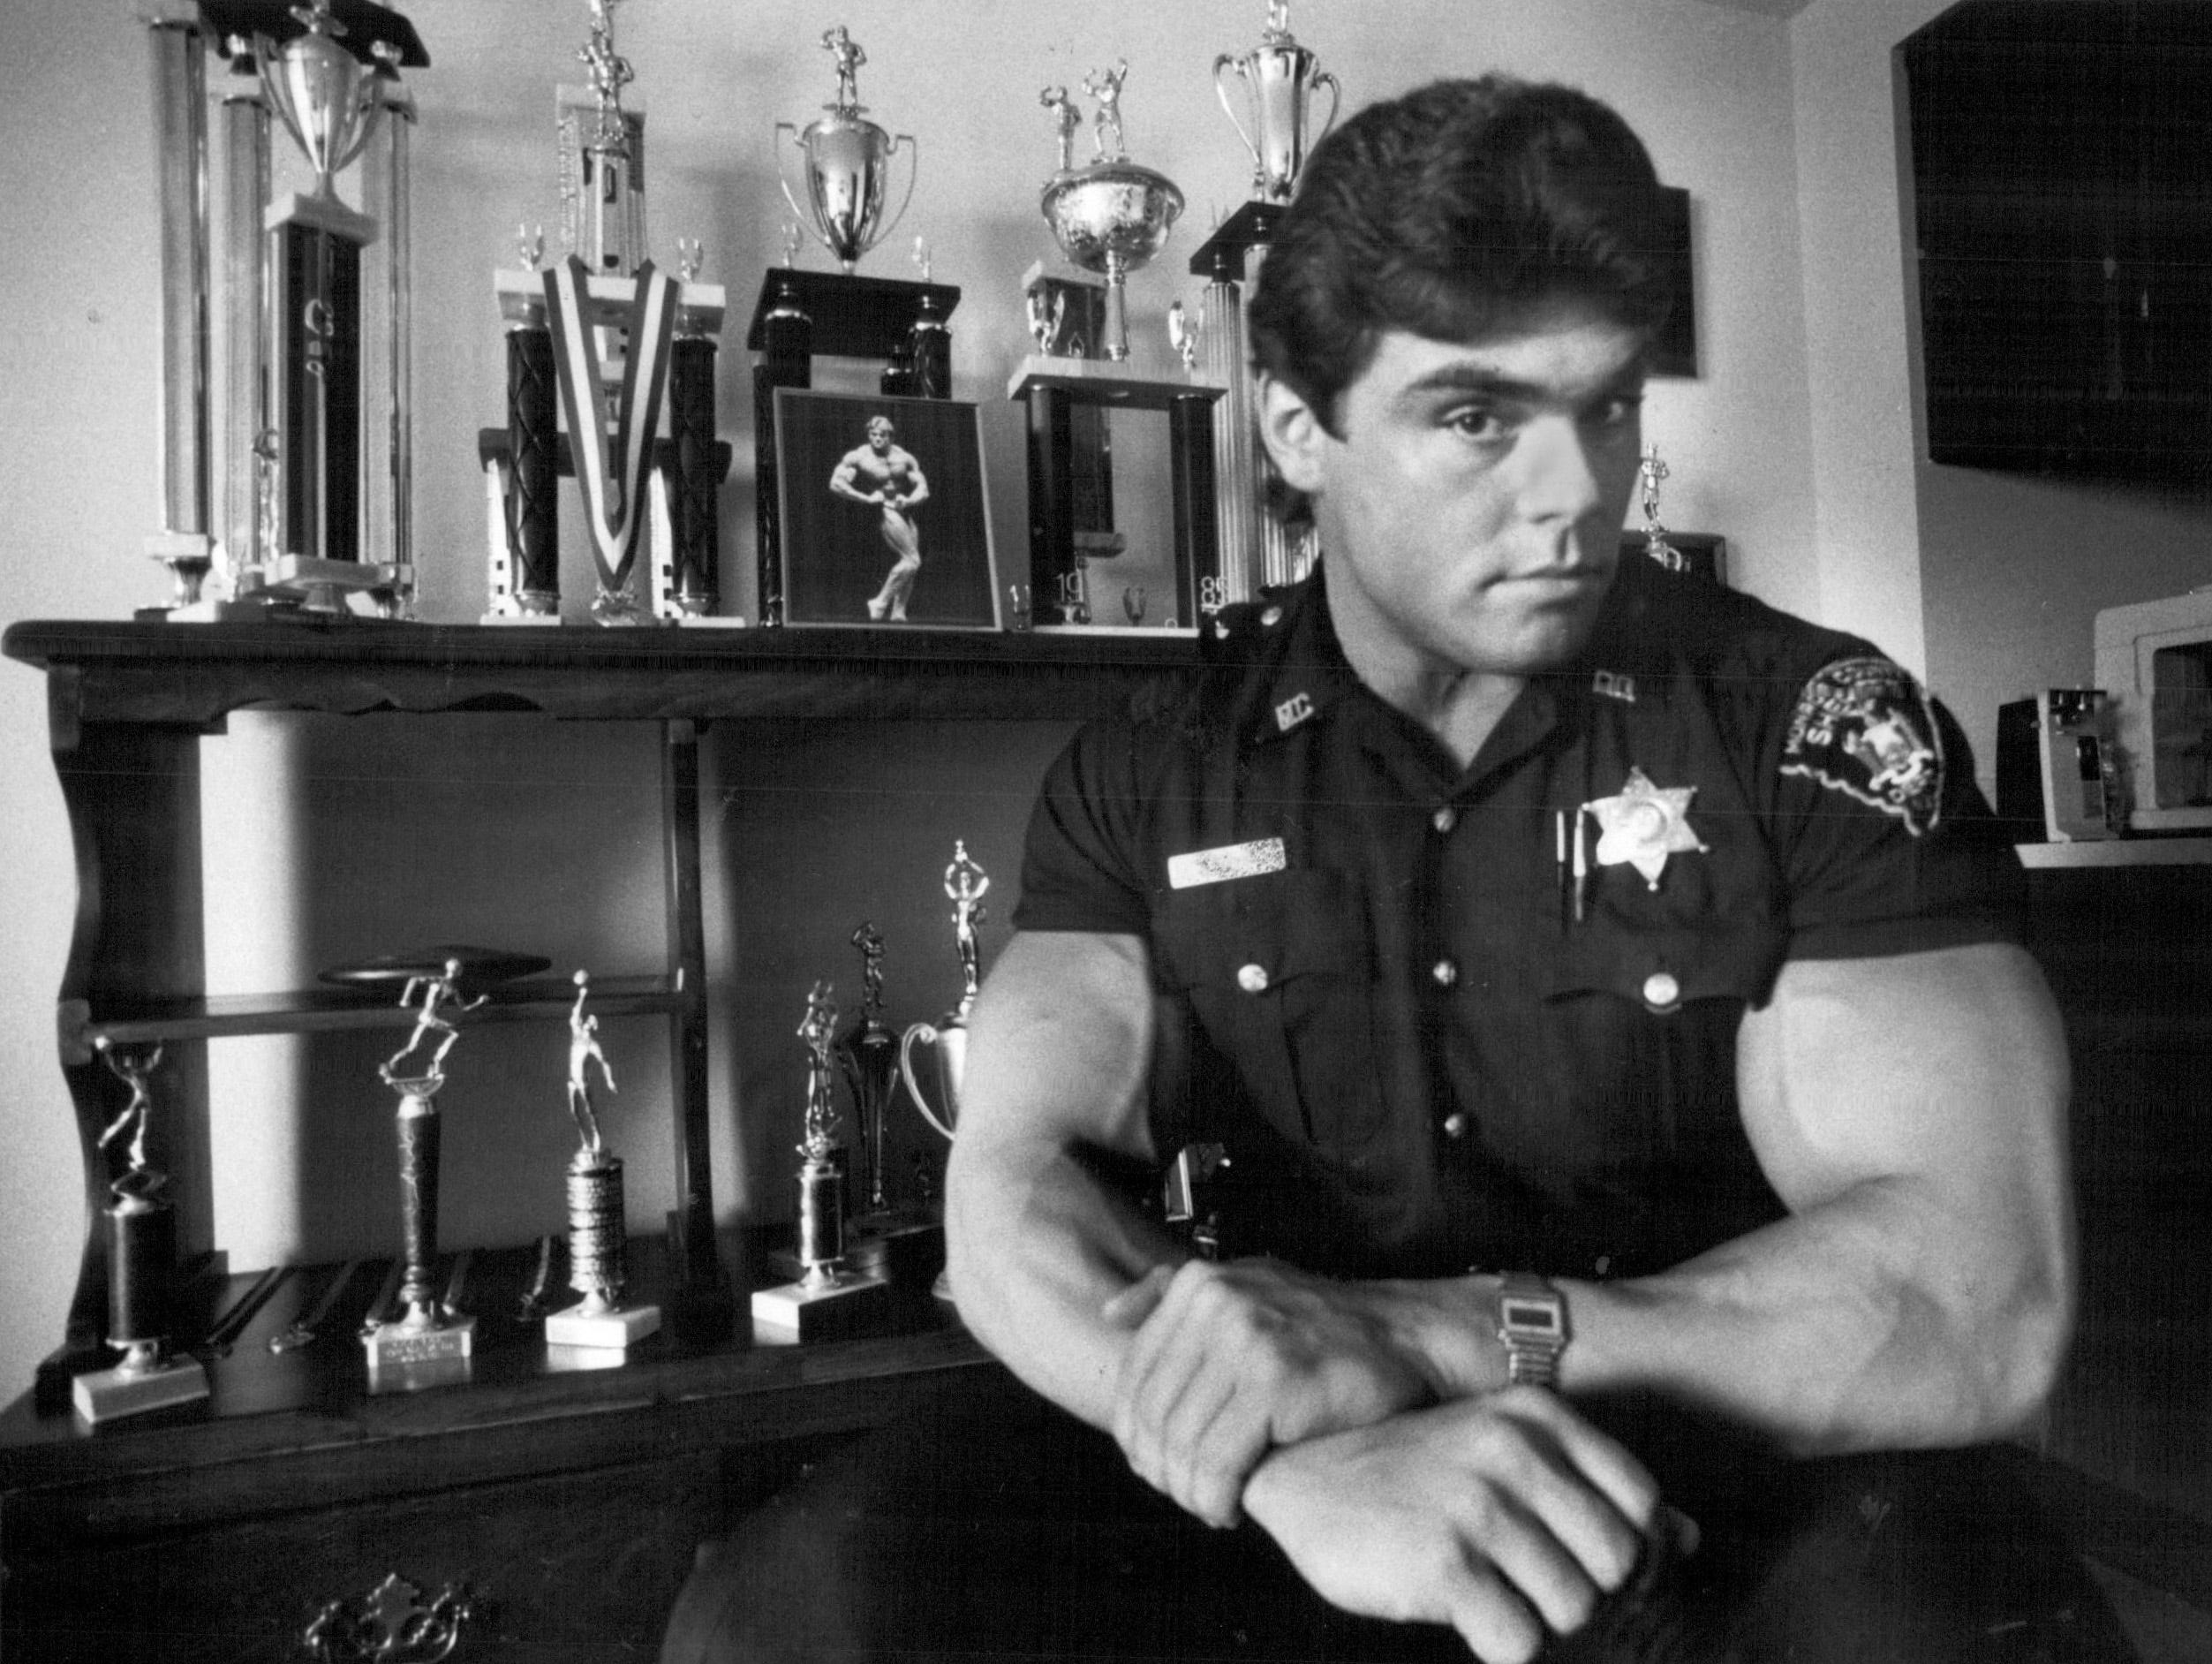 In this 1986 photo, Monroe County Sheriff's Deputy Bob Good flexes his biceps in front of the trophies he had won in amateur body building competitions.